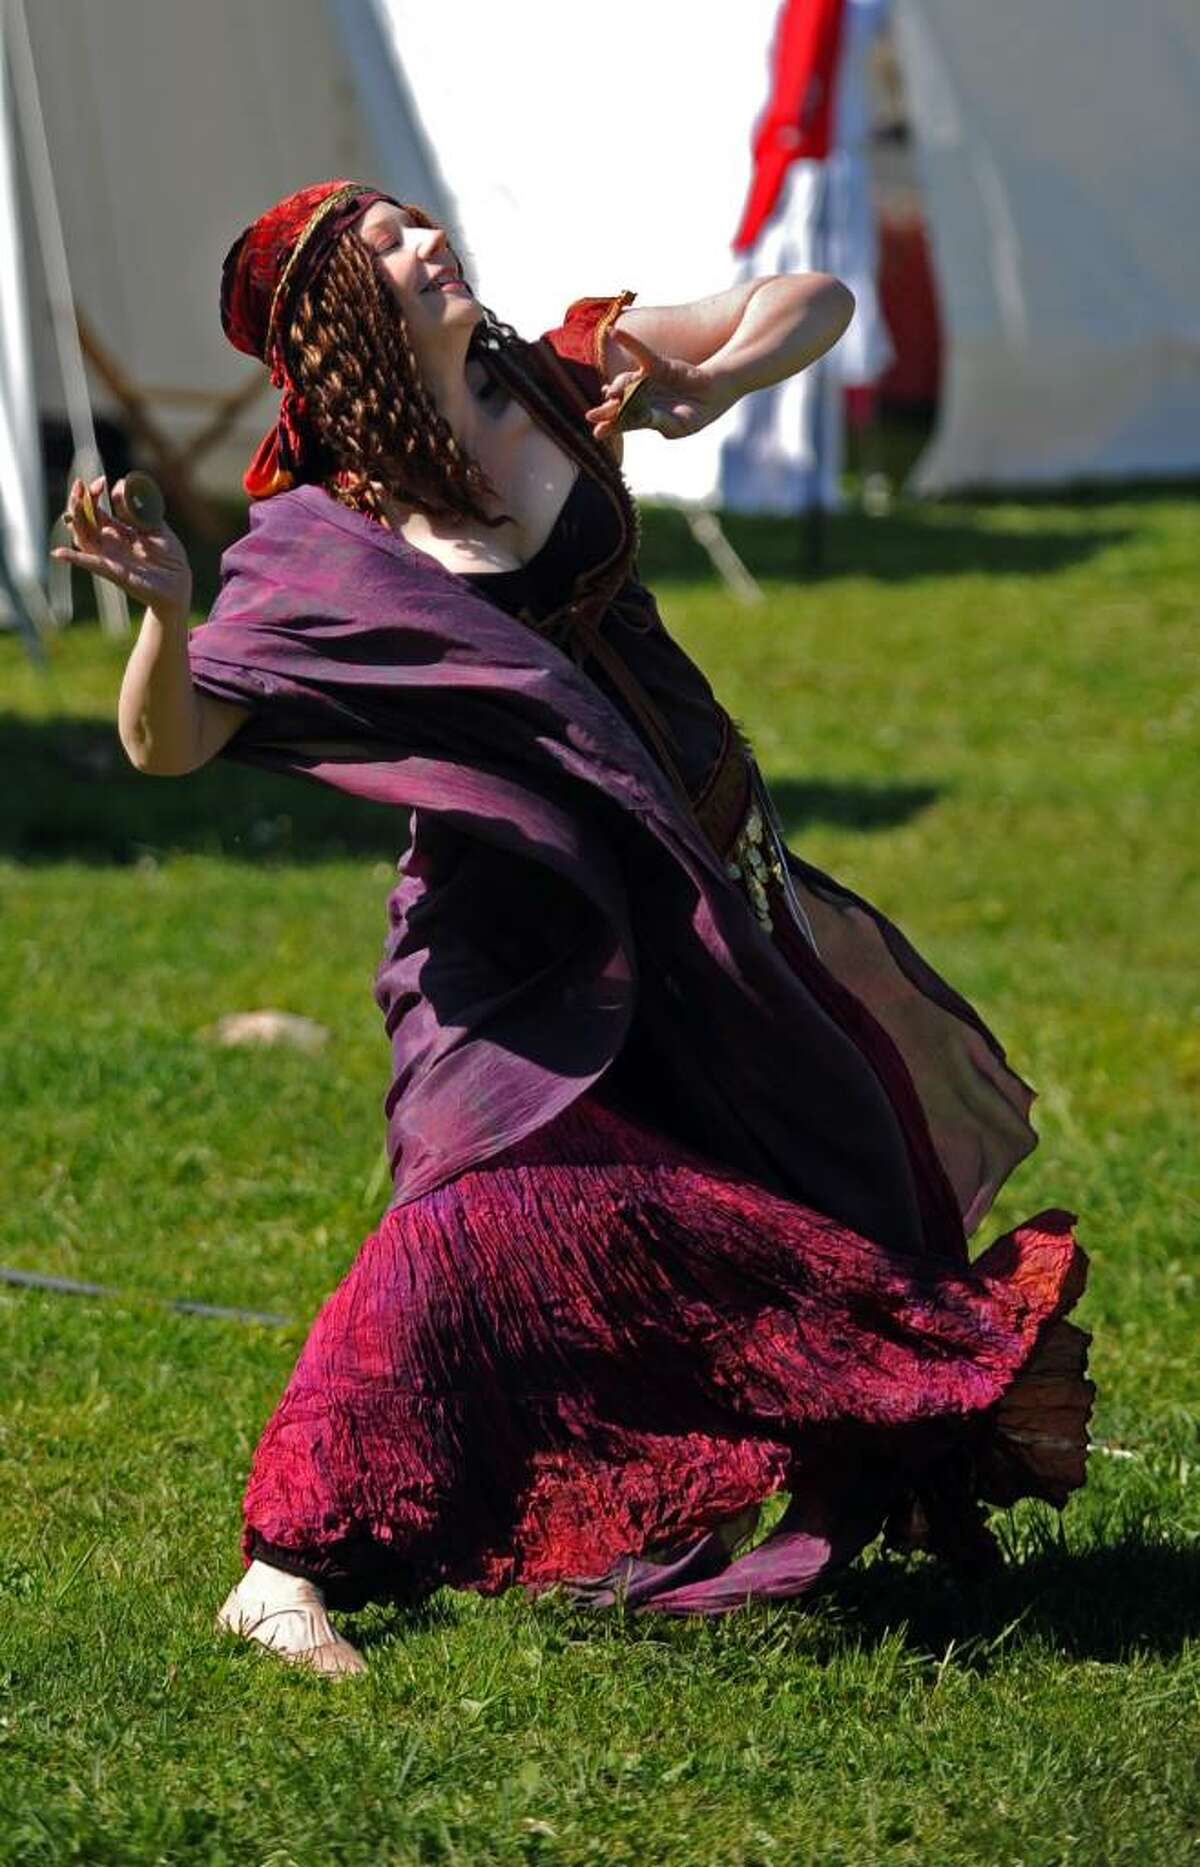 Donna Lococo, one third of the group Zabeebah!, bellydances during the 12th annual Beltaine Festival at Schreiber's Farm in Oxford on Friday April 30, 2010.